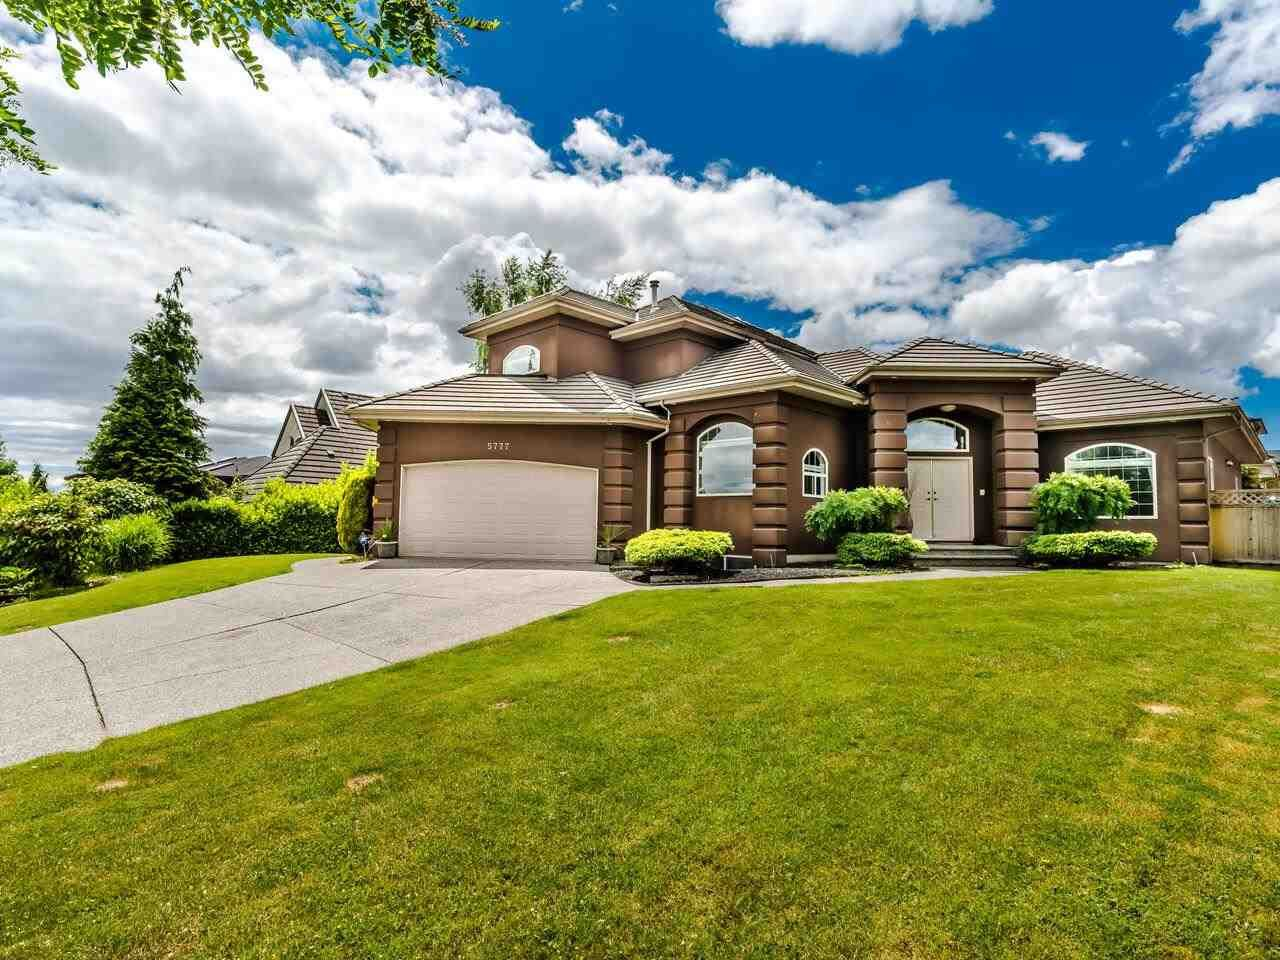 Main Photo: 5777 W KETTLE Crescent in Surrey: Sullivan Station House for sale : MLS®# R2591507